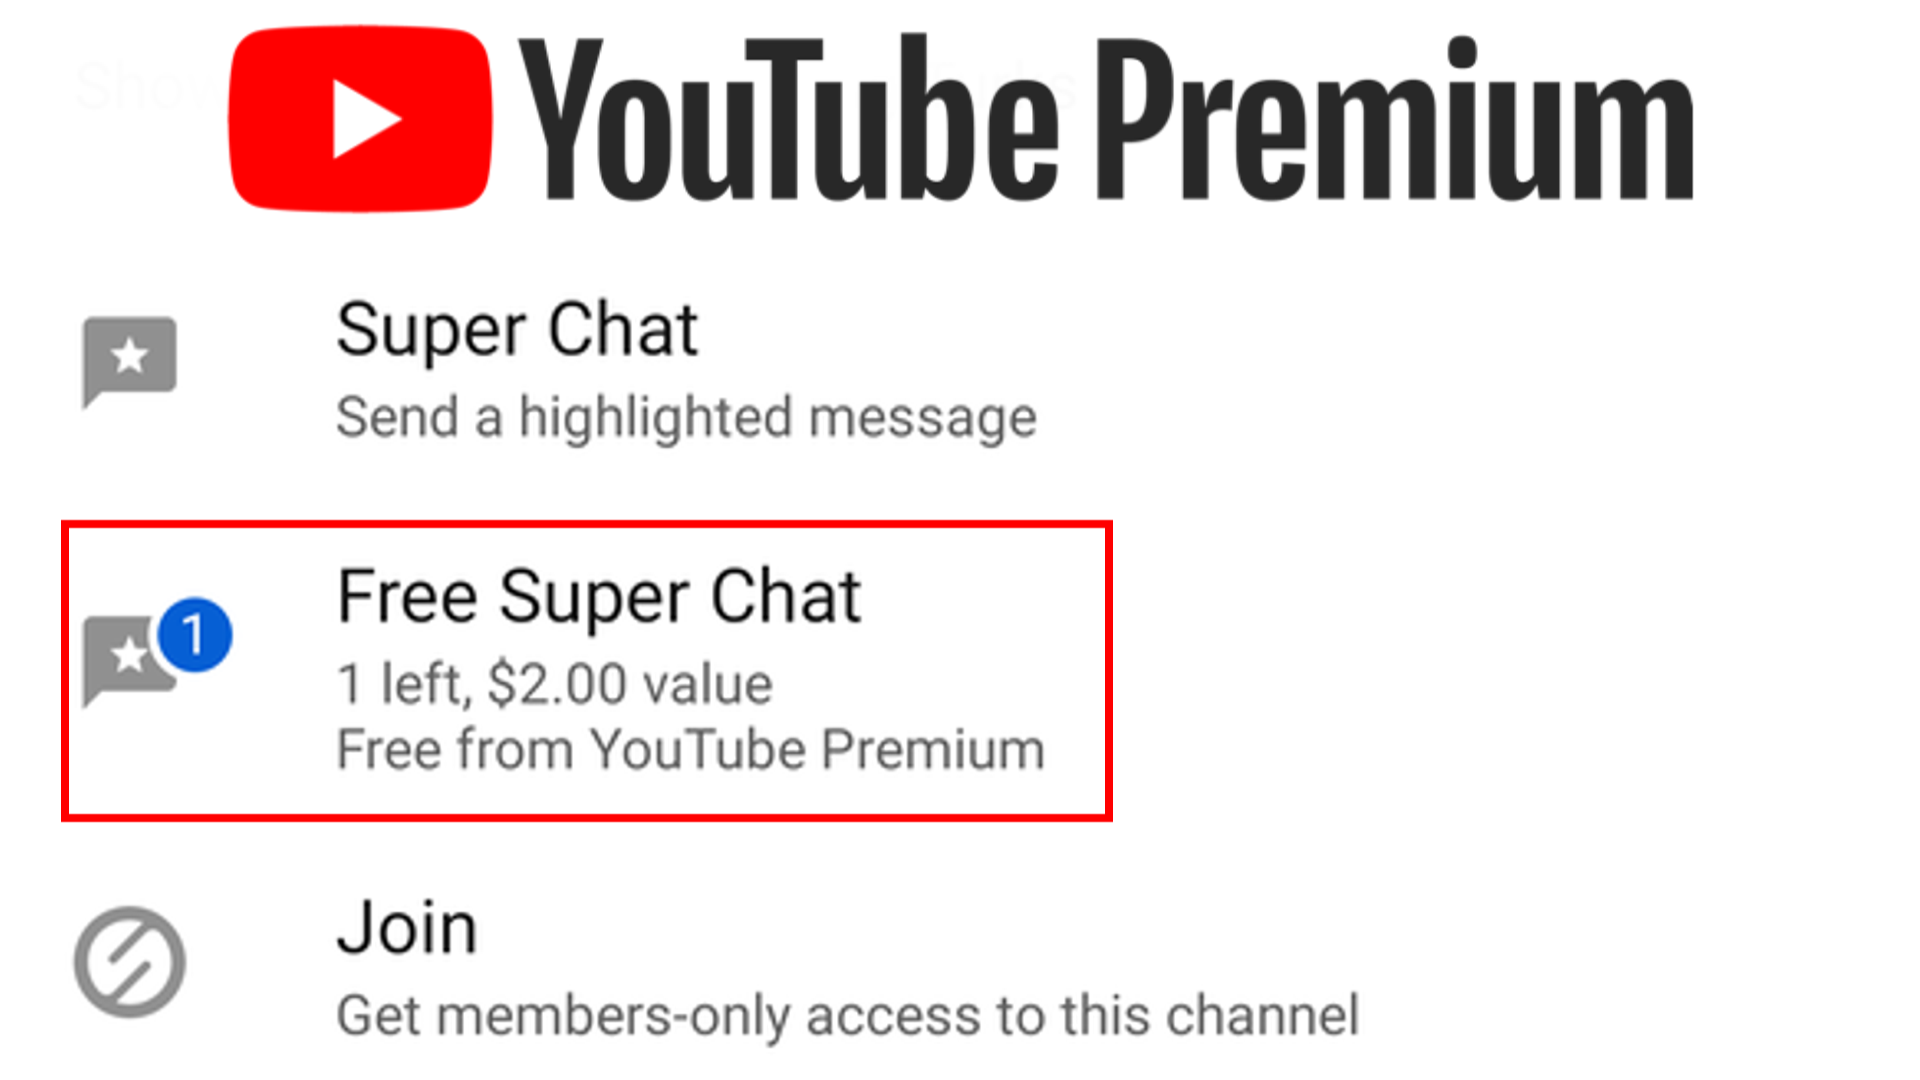 youtube premium super chat